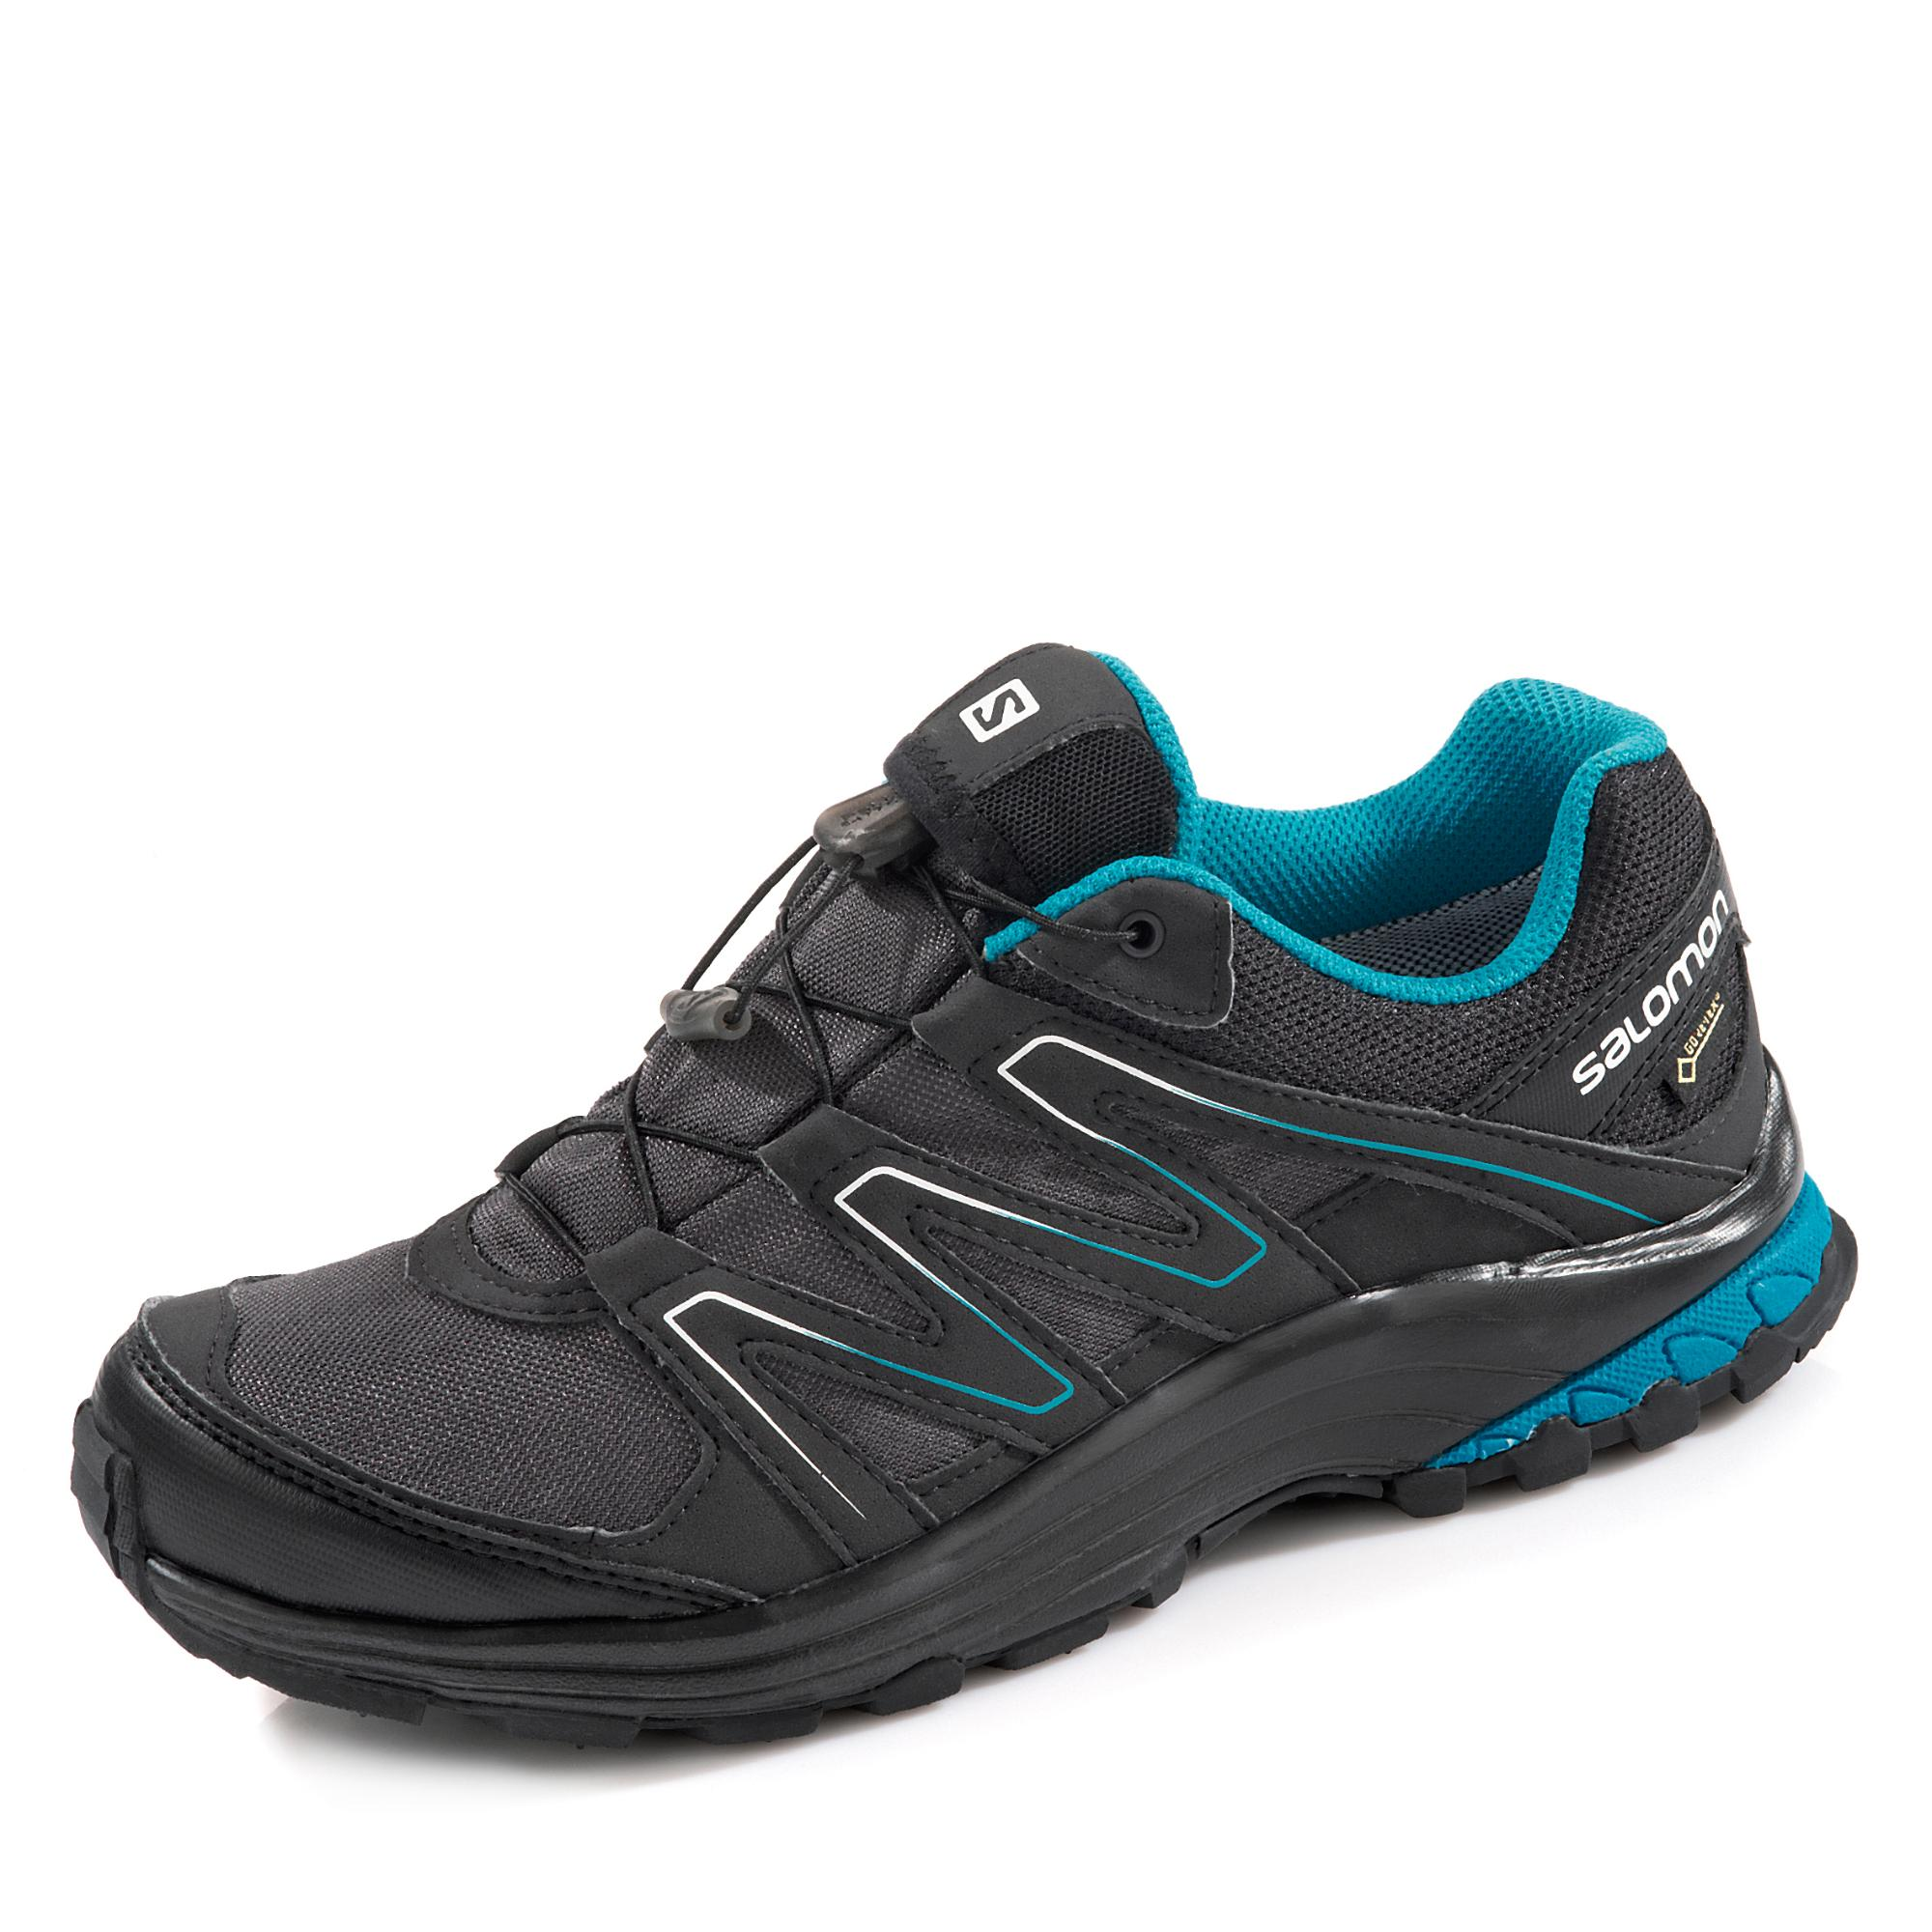 Salomon Sollia GORE TEX® Outdoorschuh anthrazit um 46